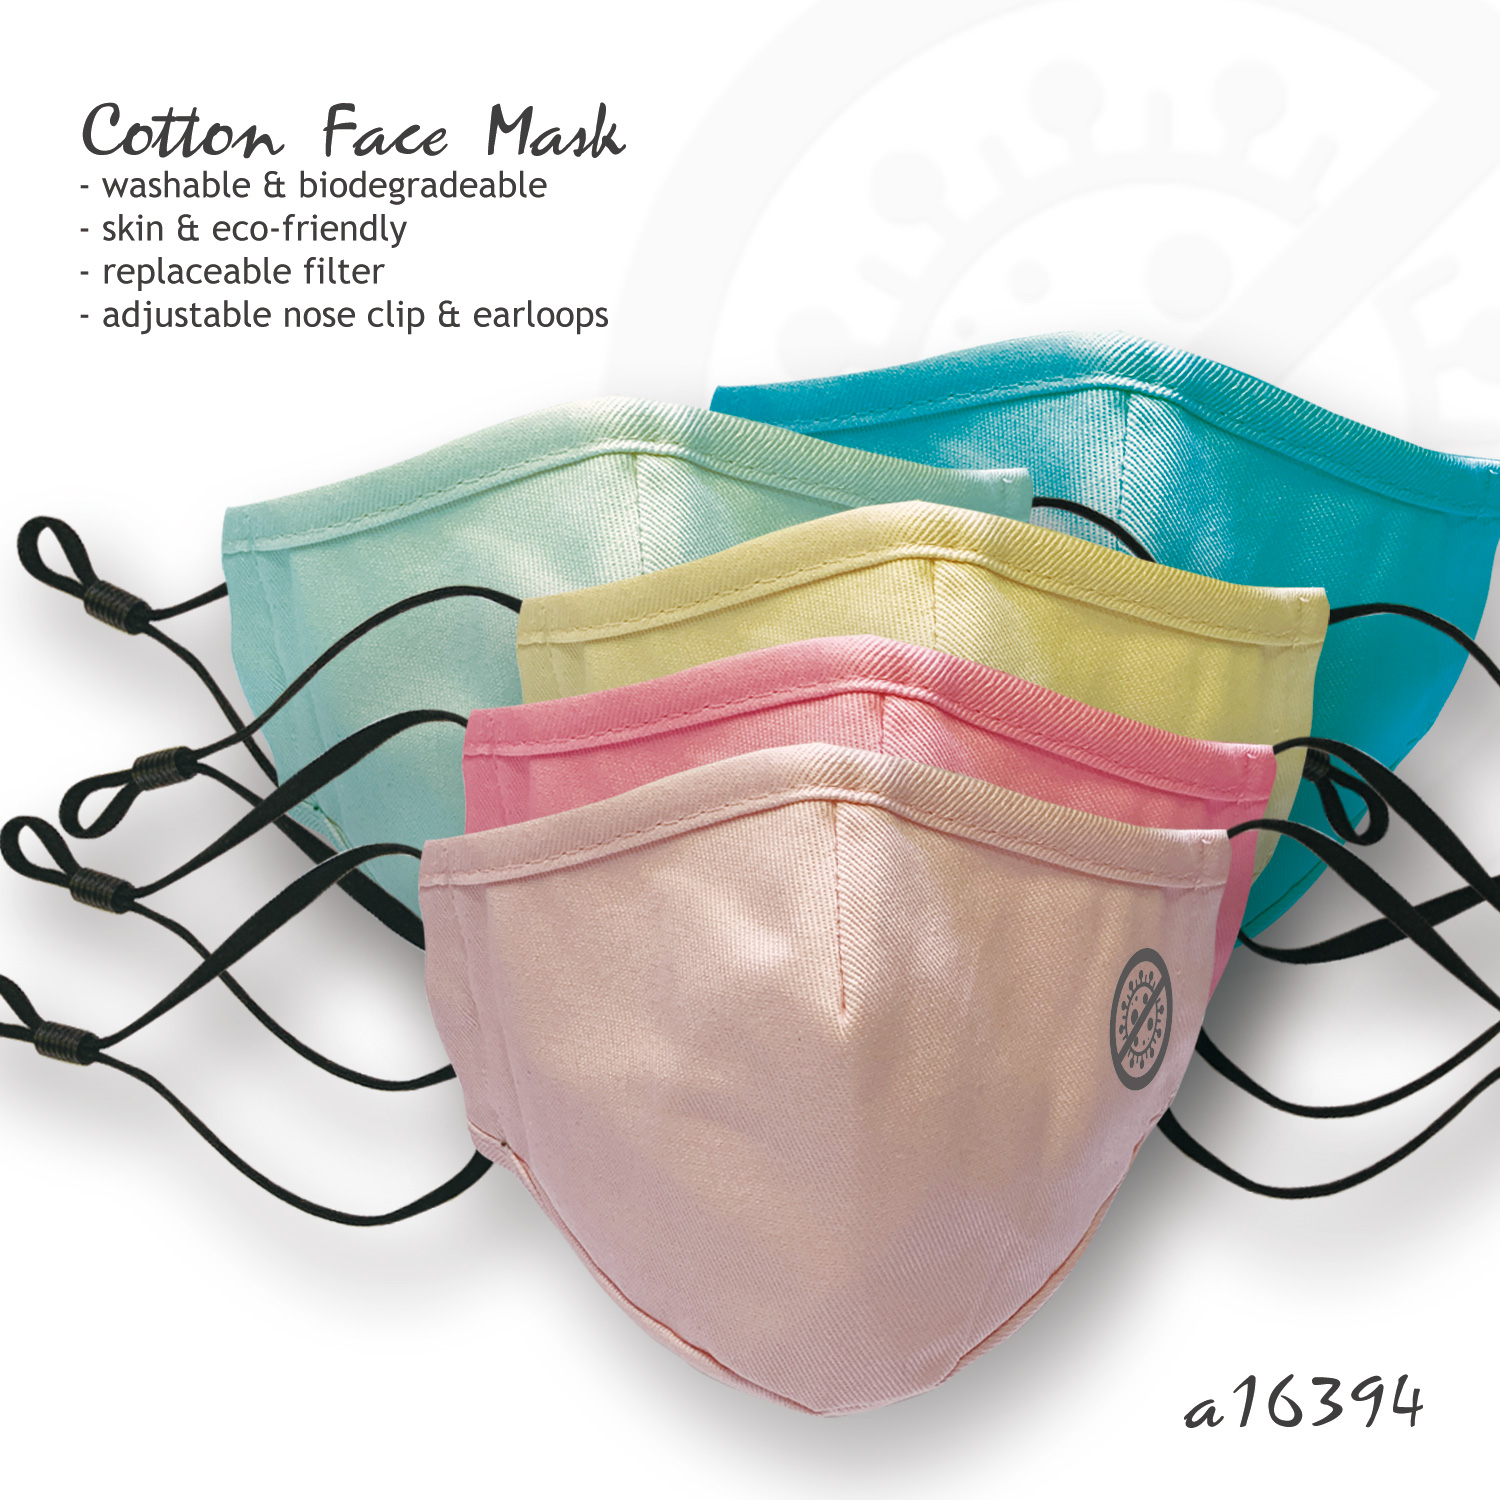 Cotton Face Mask with Anti-Virus Pattern